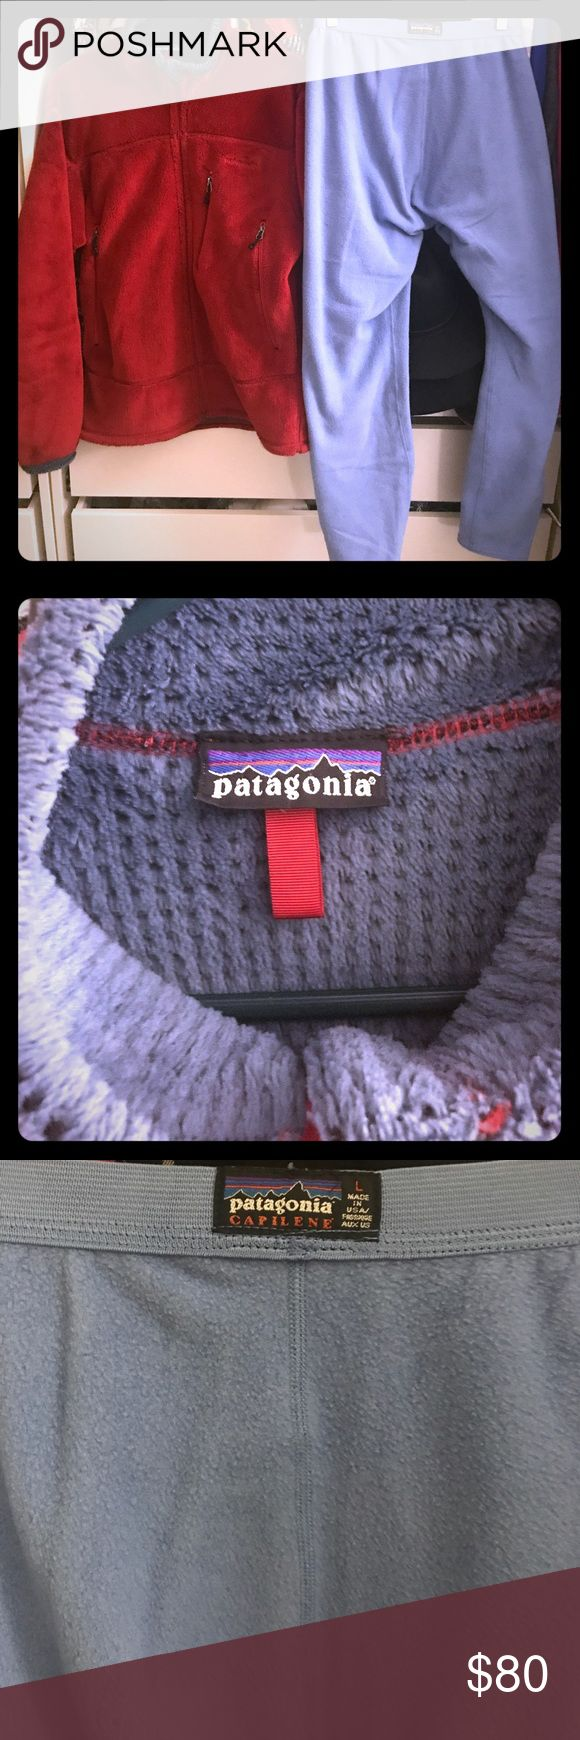 Patagonia fleece package. Great condition. Patagonia red fleece zip up jacket (size medium) and light blue fleece pants (size large). Excellent condition. Perfect outfit for the winter. Will sell separately. Patagonia Jackets & Coats Ski & Snowboard